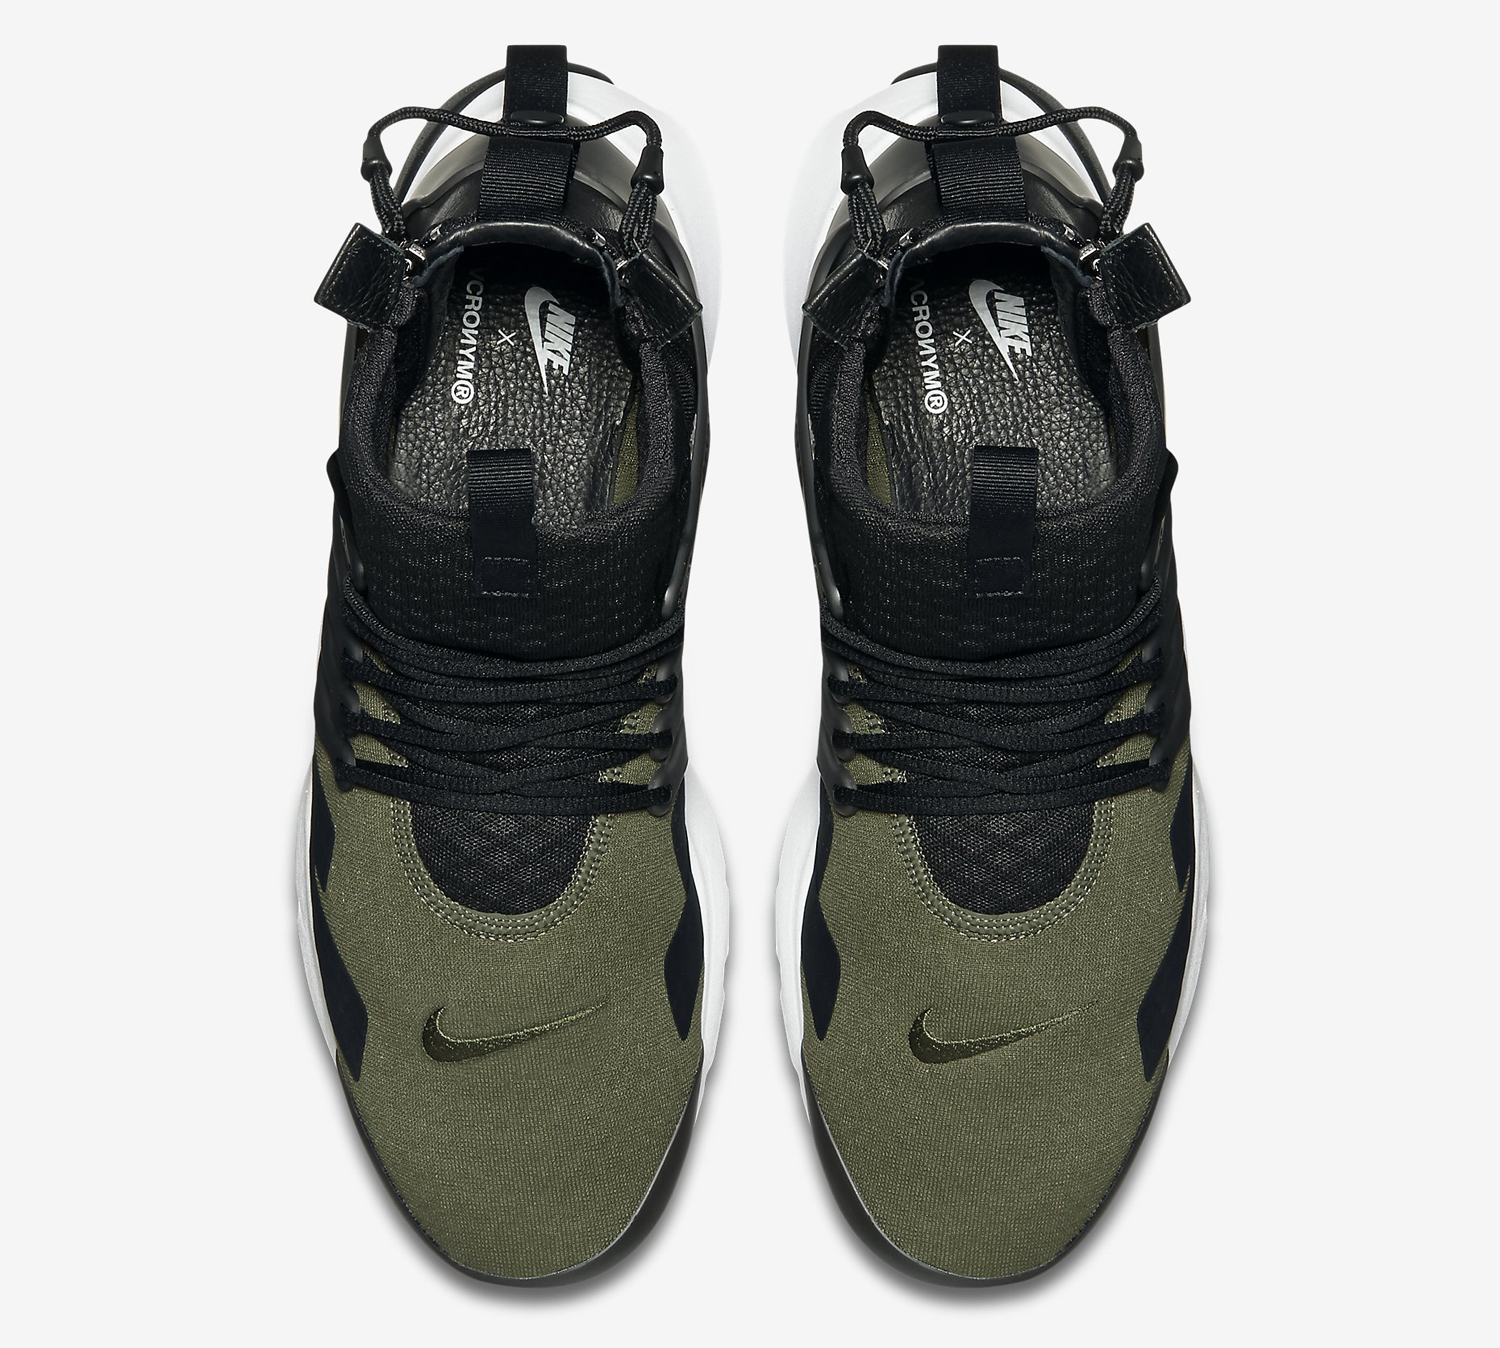 Acronym Nike Air Presto Mid 844672-200 Olive Black Top